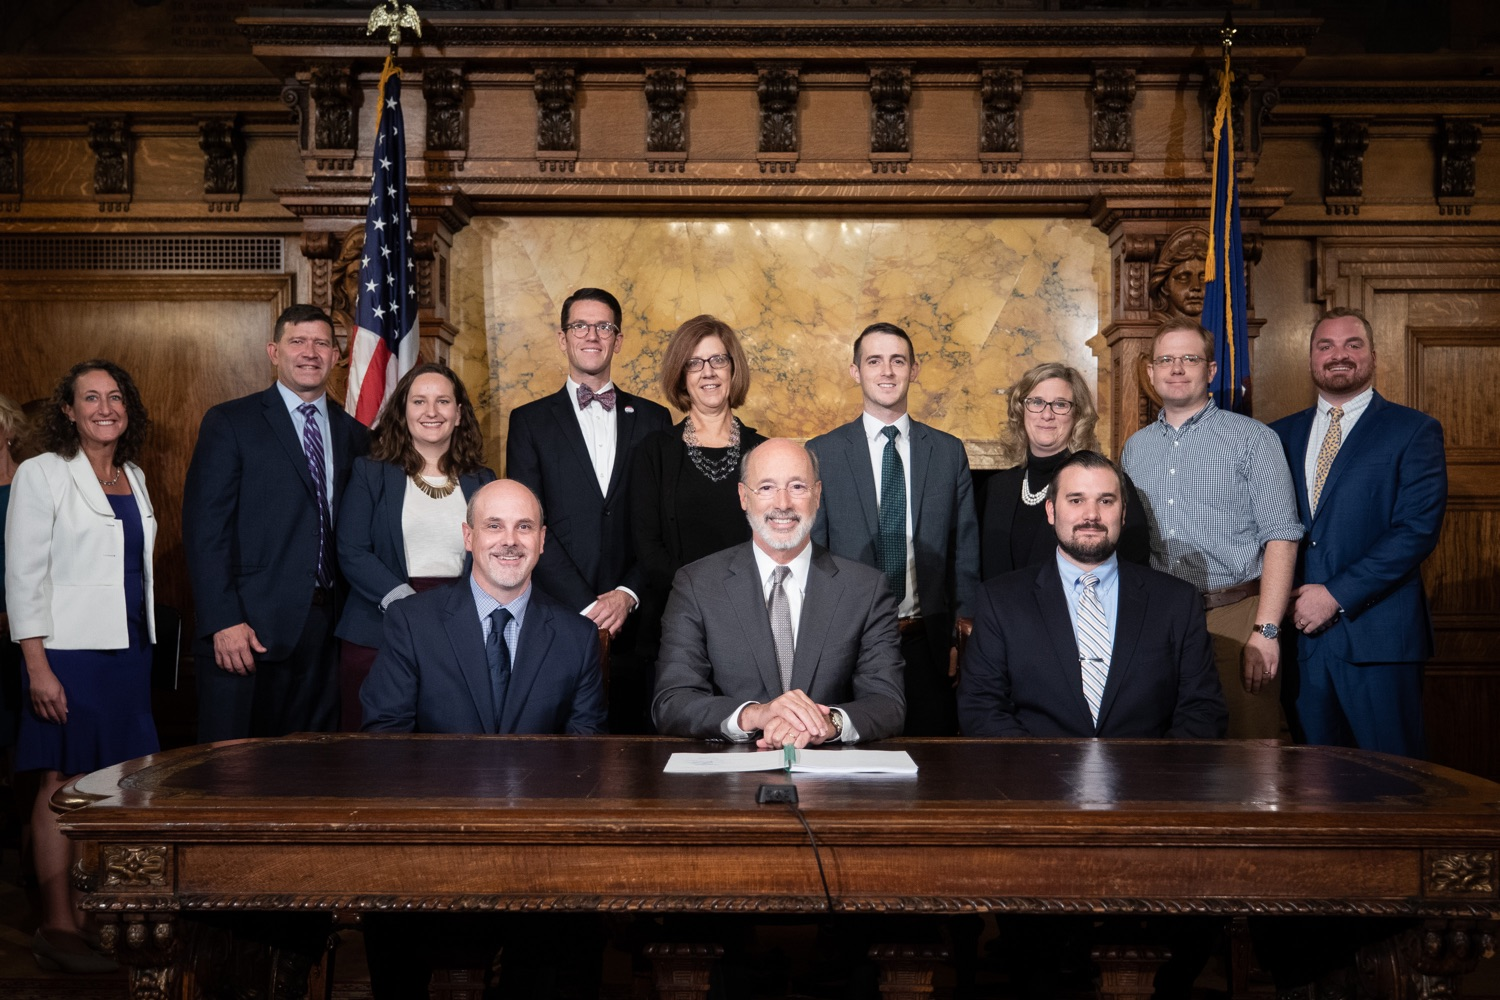 "<a href=""http://filesource.abacast.com/commonwealthofpa/photo/17554_gov_voter_reform_bill_dz_023.jpg"" target=""_blank"">⇣ Download Photo<br></a>Harrisburg, PA  Governor Tom Wolf posing with attendees after the bill signing. Governor Wolf made voting more convenient and secure by signing Act 77 of 2019, the most significant improvement to Pennsylvanias elections in more than 80 years. The bipartisan compromise legislation takes effect for the April 2020 primary election and makes Pennsylvania a national leader with voter-friendly election reforms."